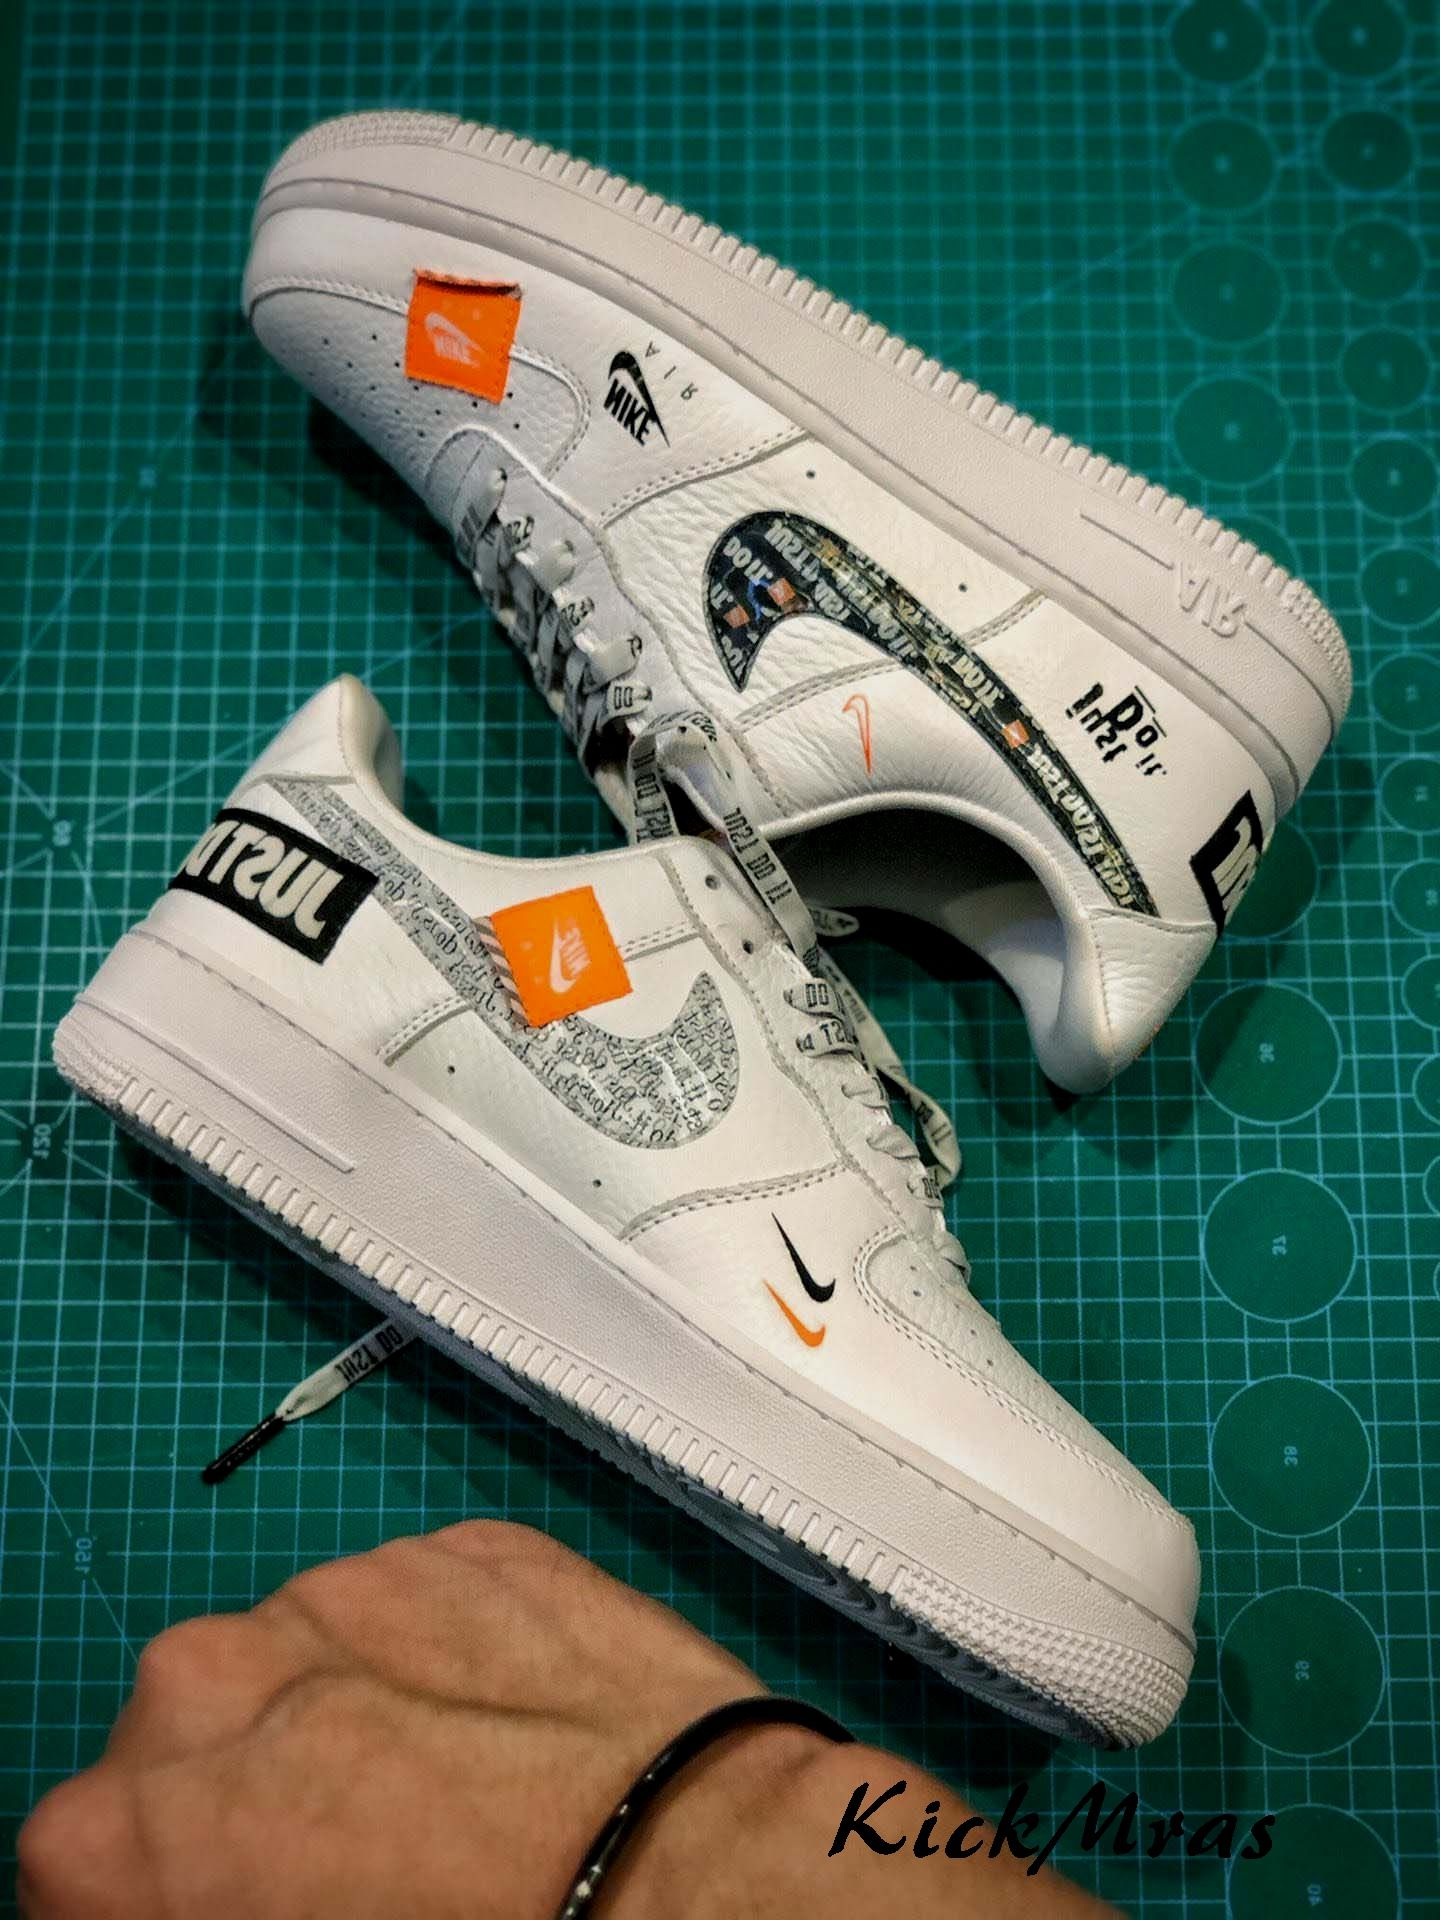 Nike Air Force 1 Jdi Prm Just Do It Pack Fashion Shoes 2020 Fall Winter Trends In 2020 Nike Casual Shoes Nike Nike Fashion Shoes